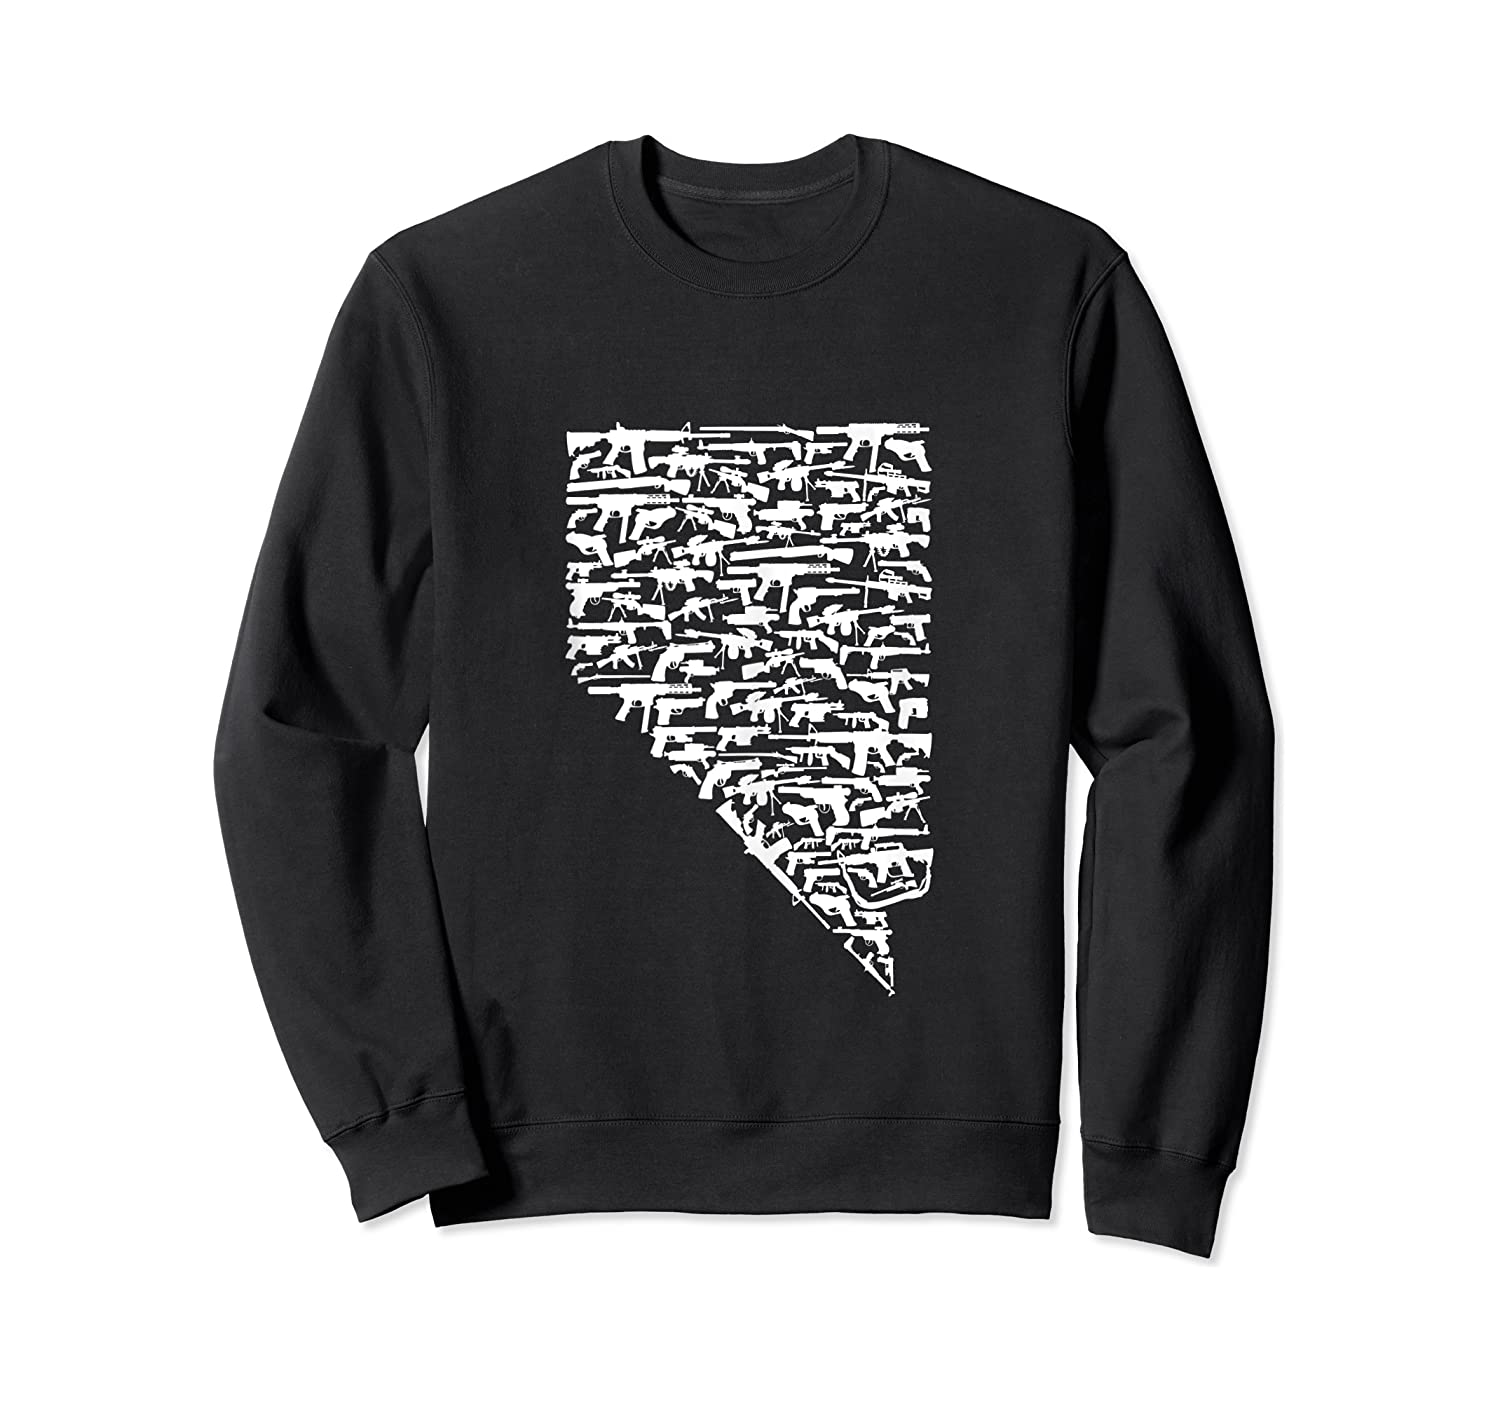 State Of Nevada Made Up Of Guns 2nd Adt Rights Shirts Crewneck Sweater